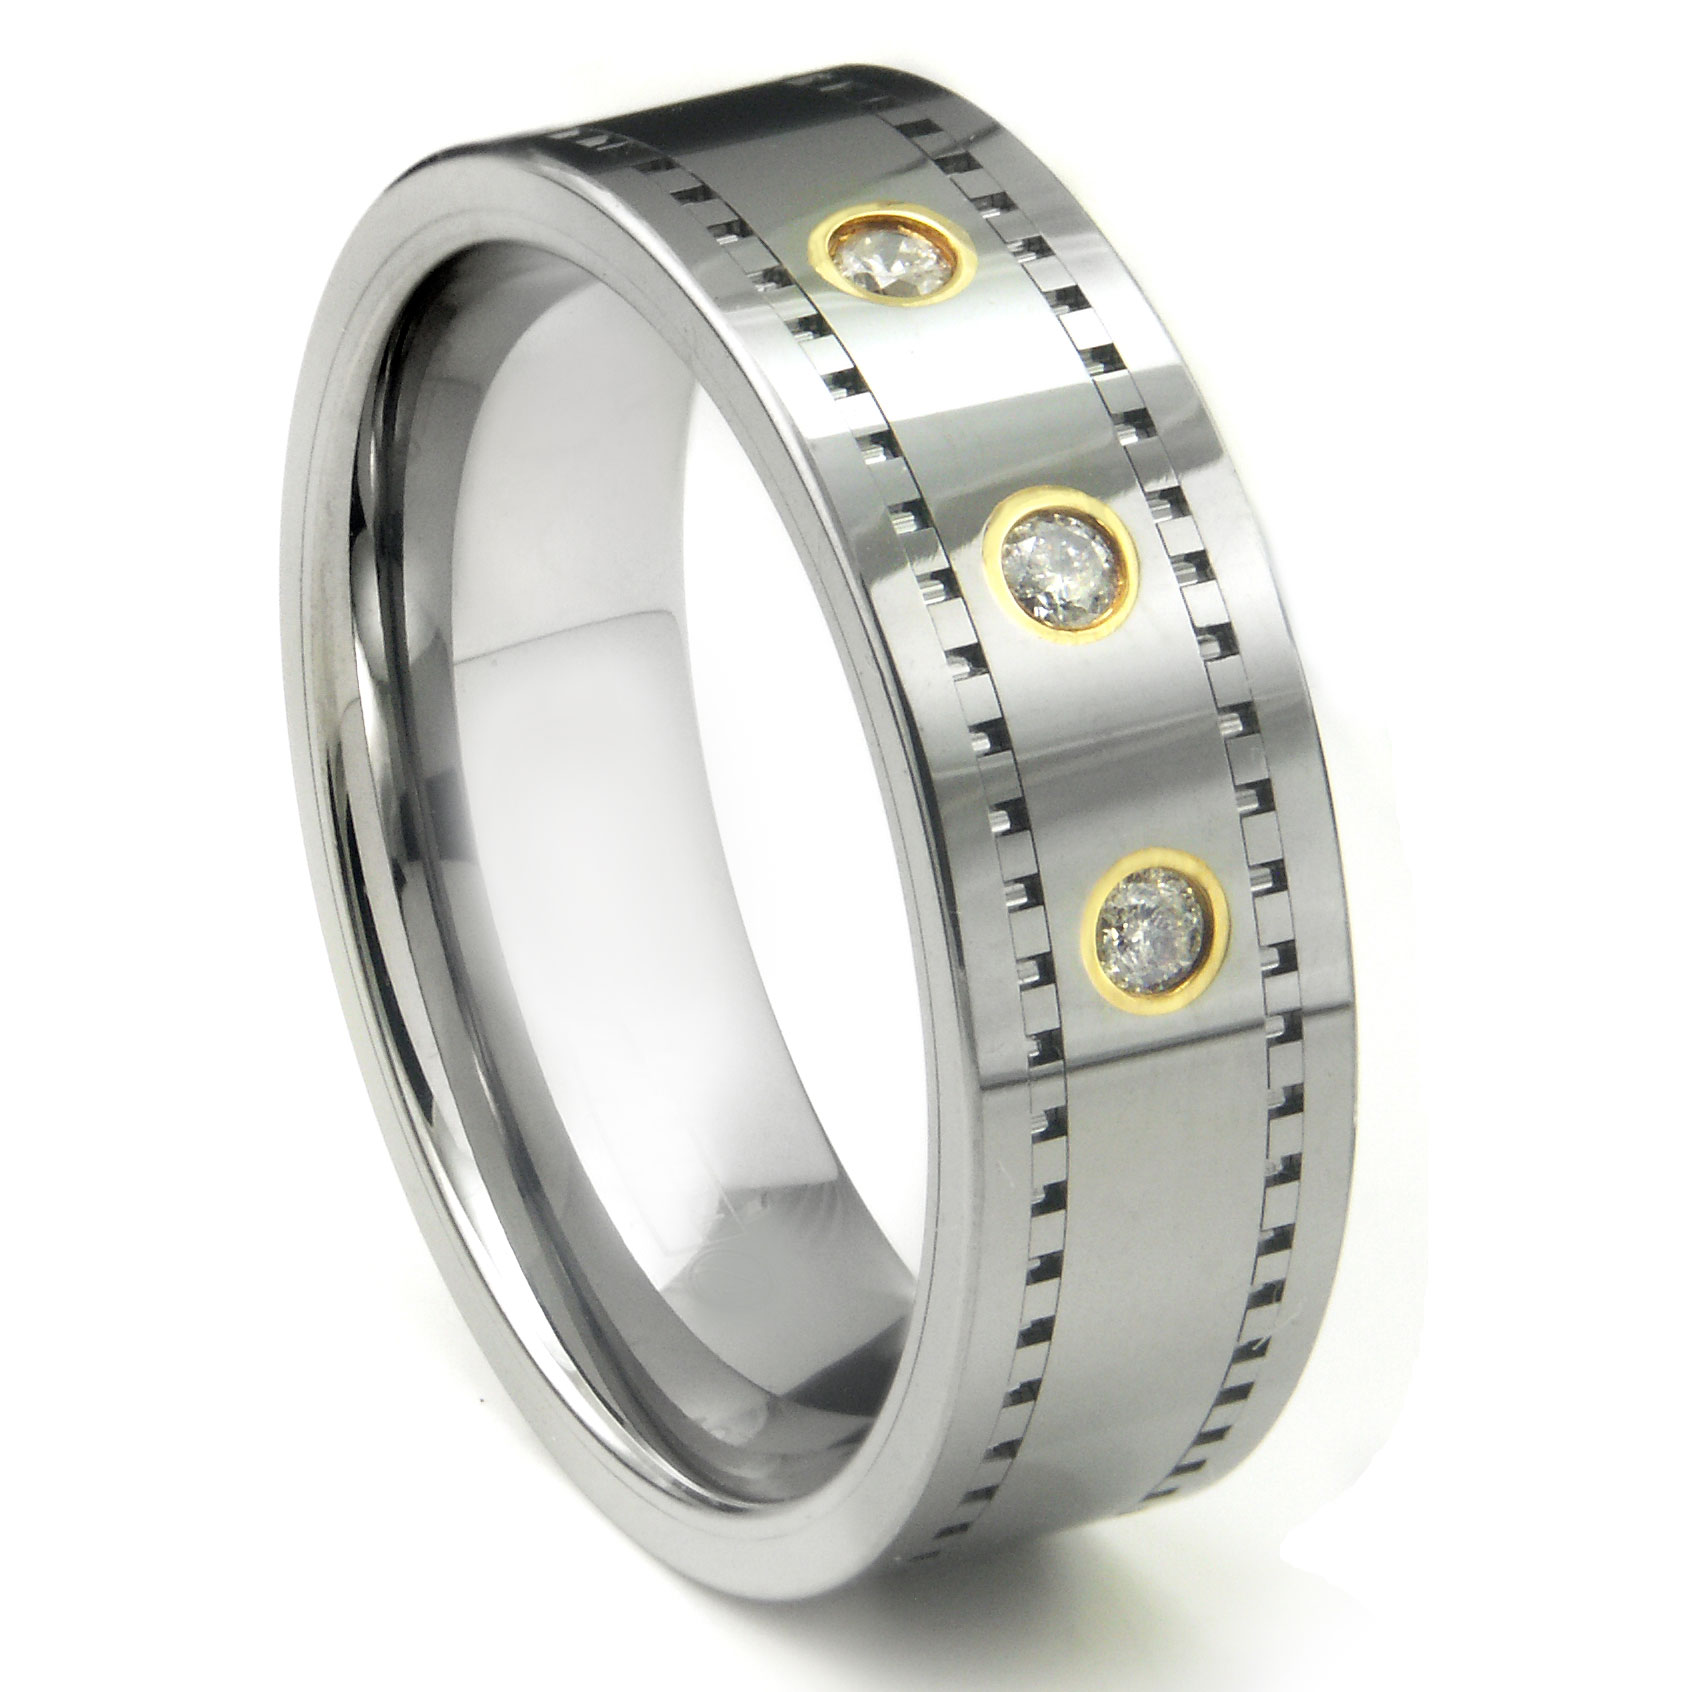 angle home product milgrain wedding halo jonathan k ring rings engagement and e engraved hand diamond